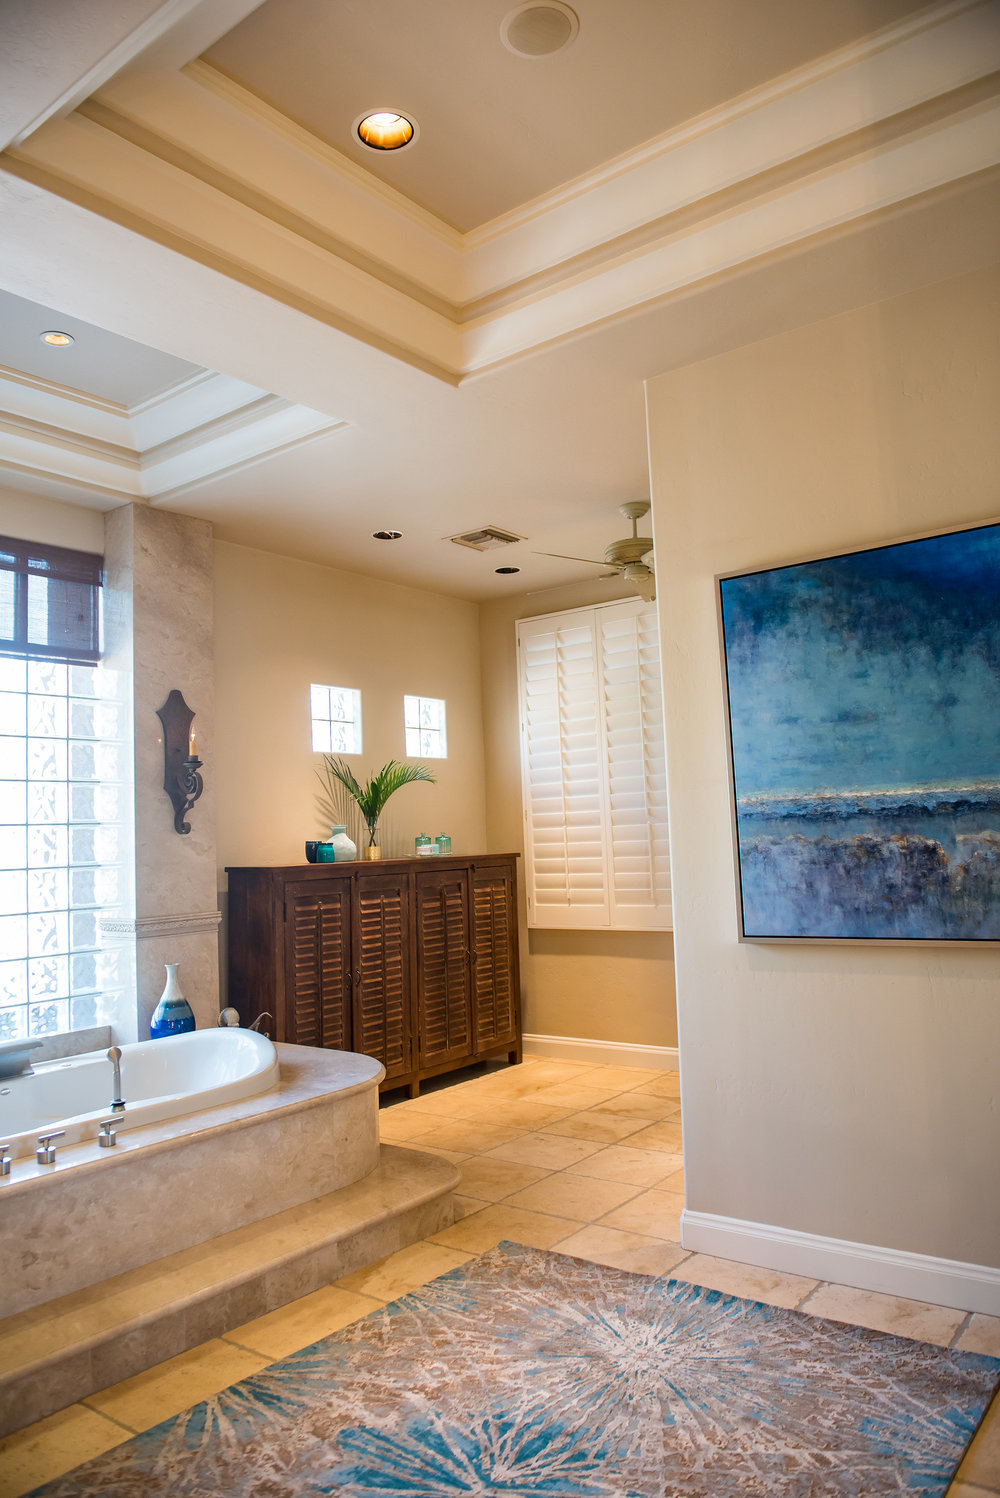 22 - MasterBath+Blues+Modern+Art+Spa+Luxe.jpg